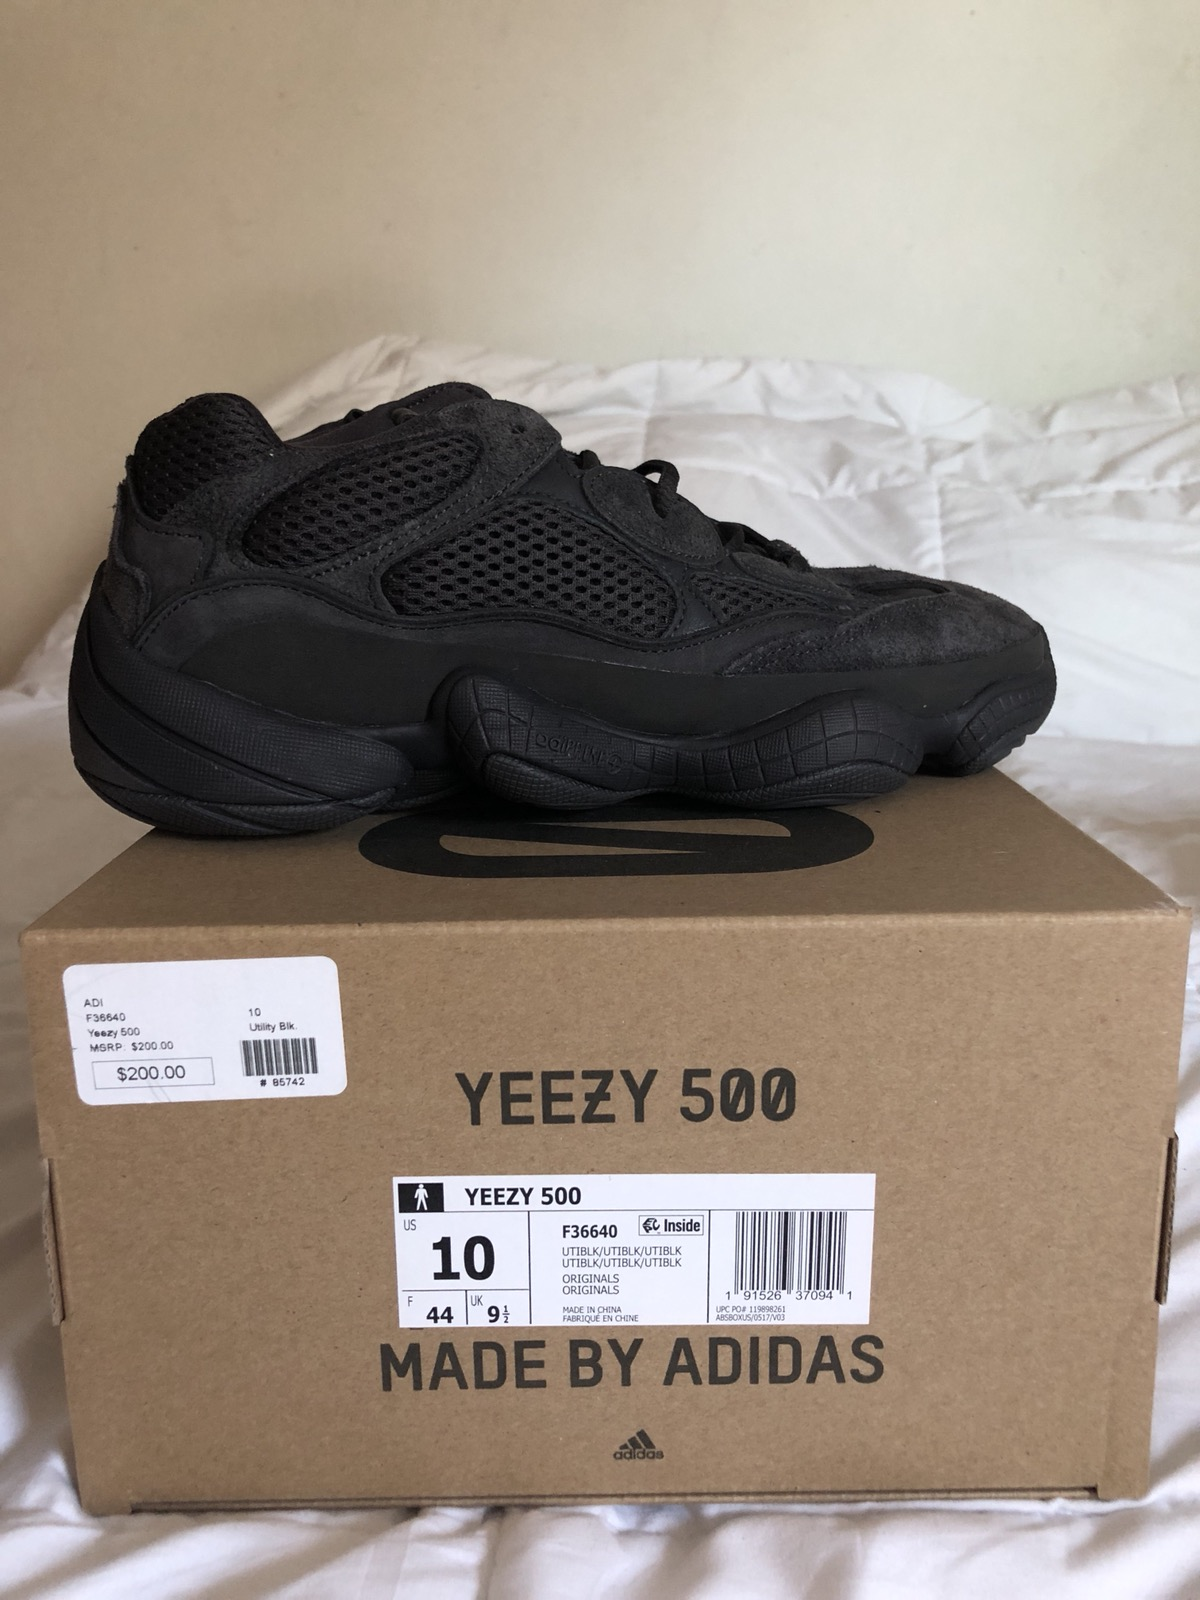 57669202e Adidas Kanye West Yeezy 500 Black Size 10 - Low-Top Sneakers for Sale -  Grailed